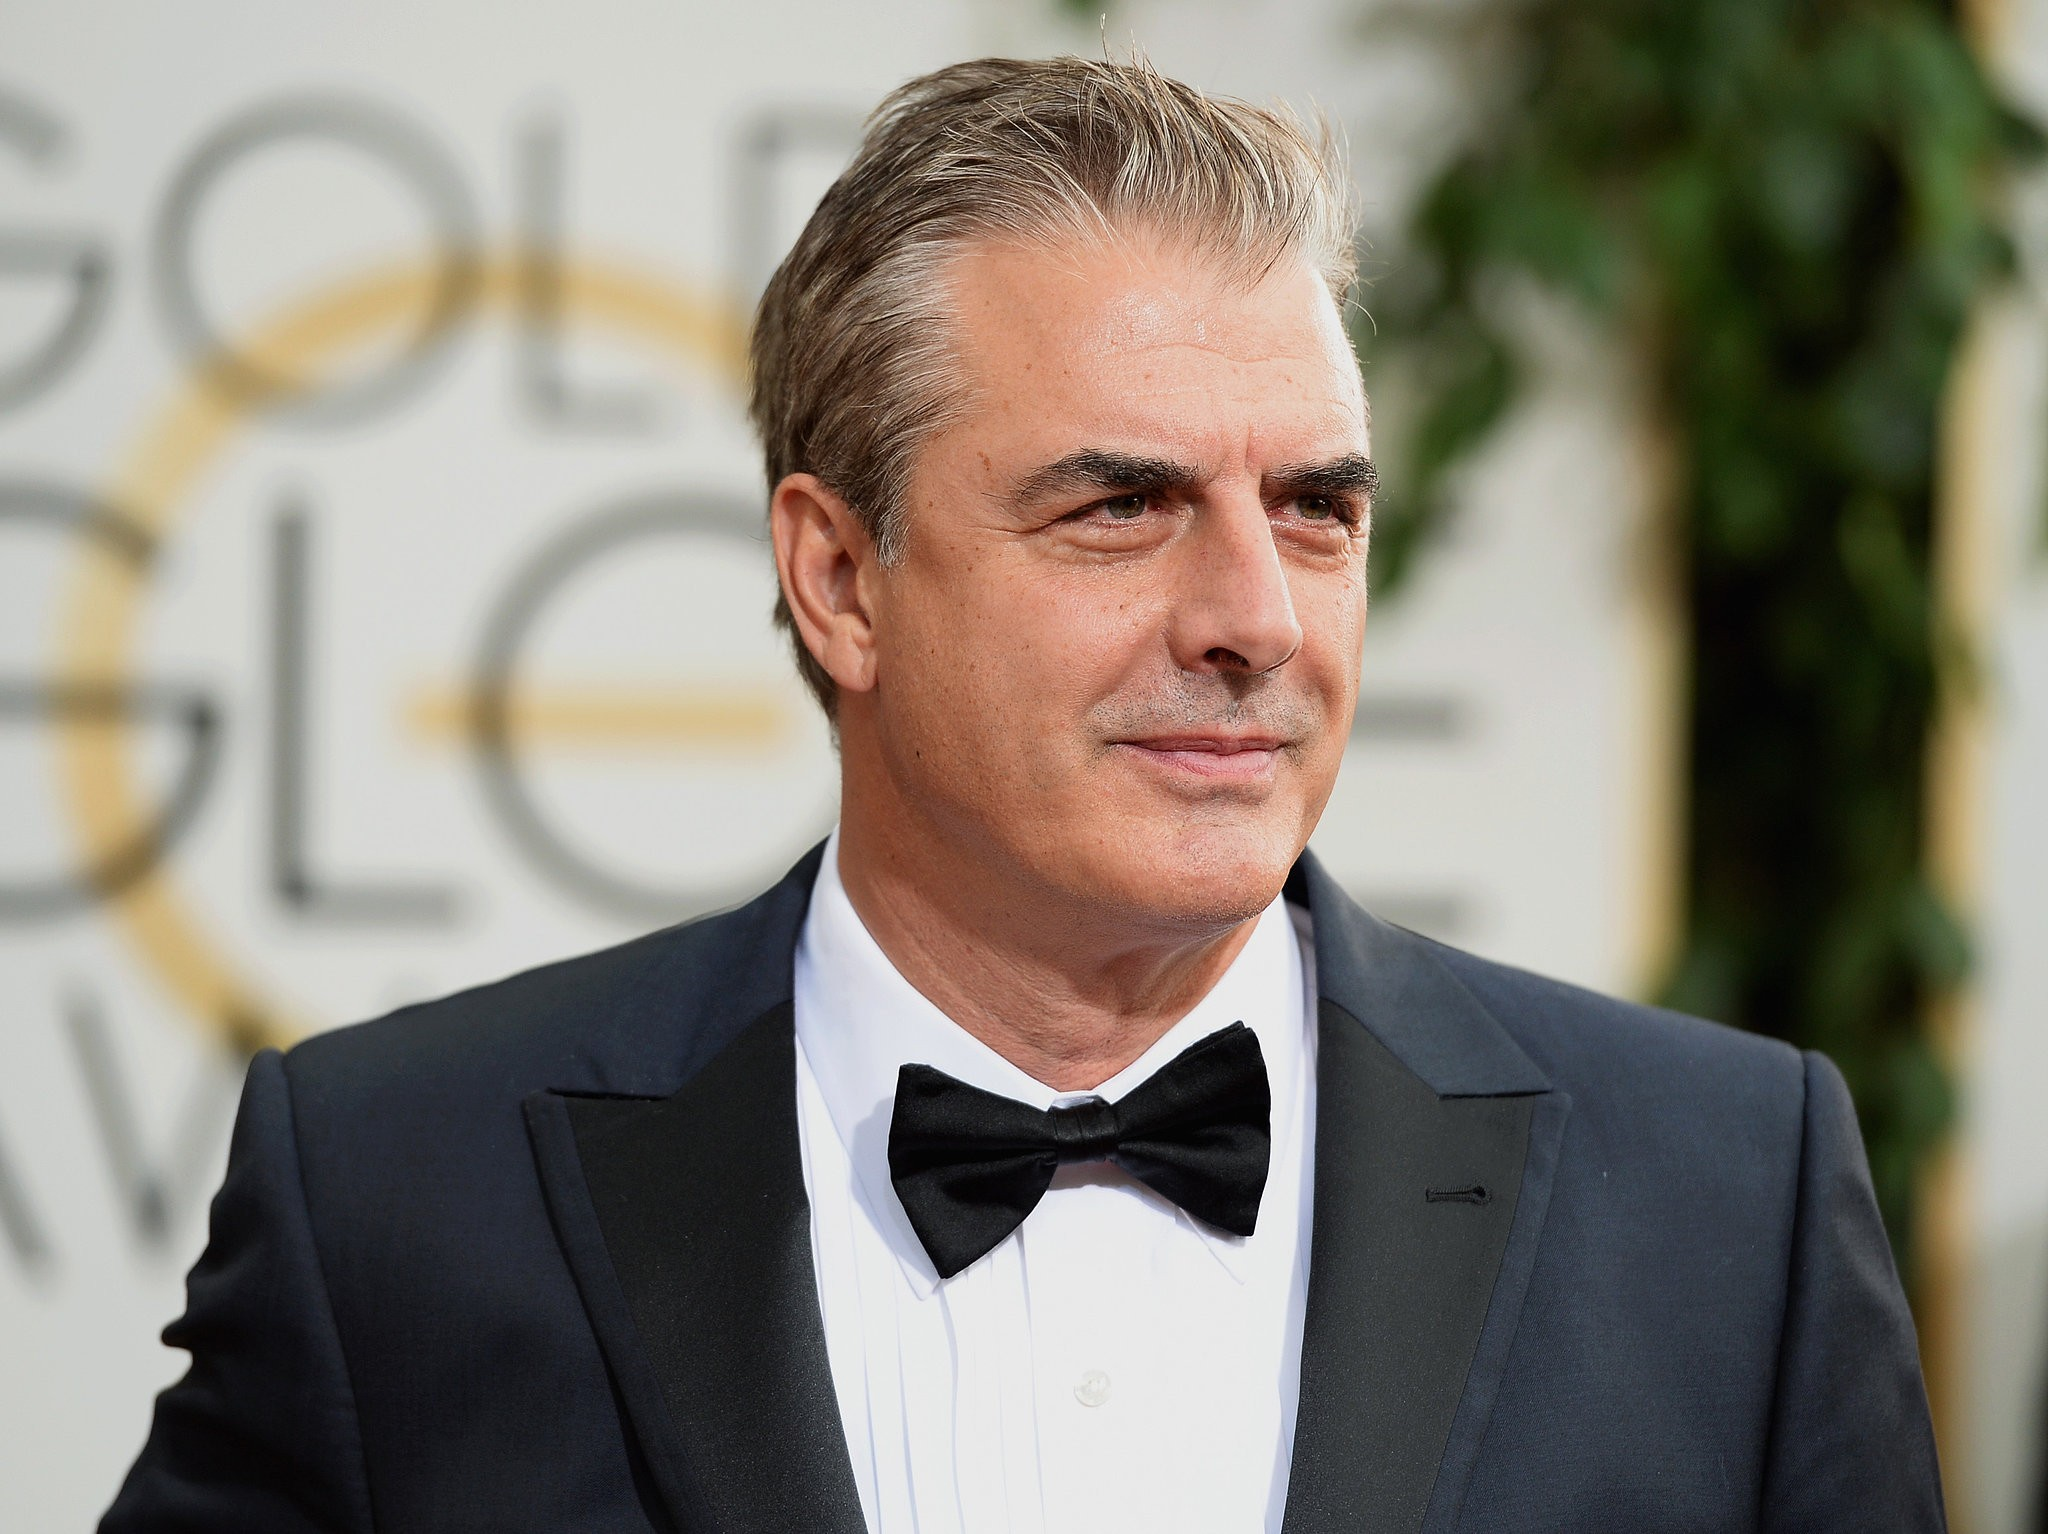 Chris-Noth-brought-seriously-sexy-side-Globes